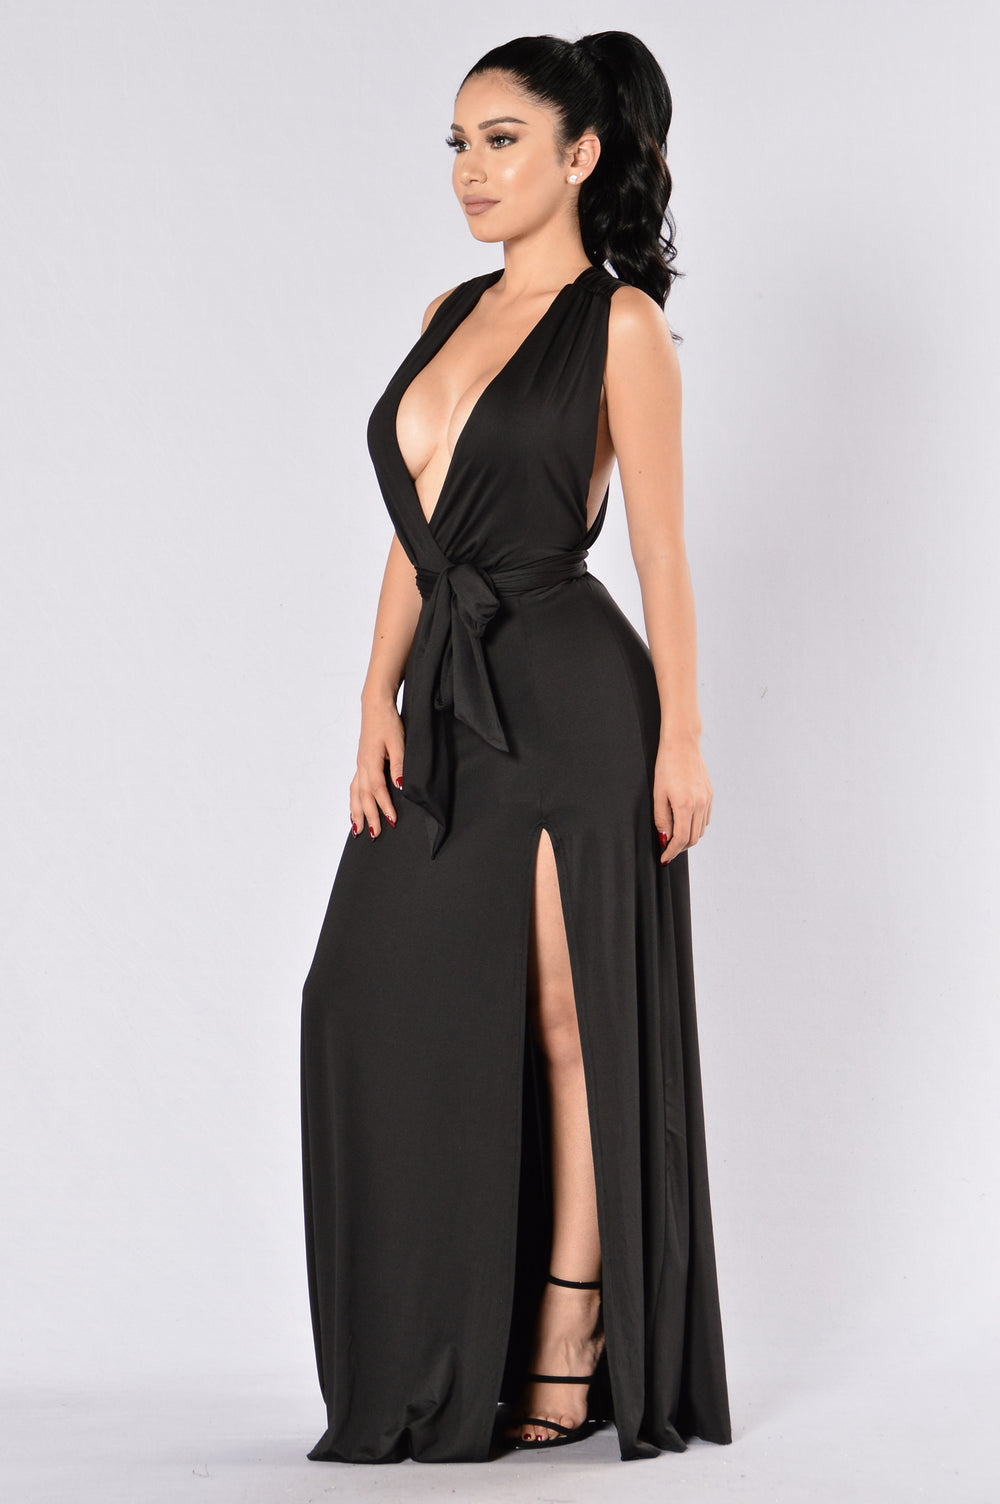 Divine Sorrow Dress - Black